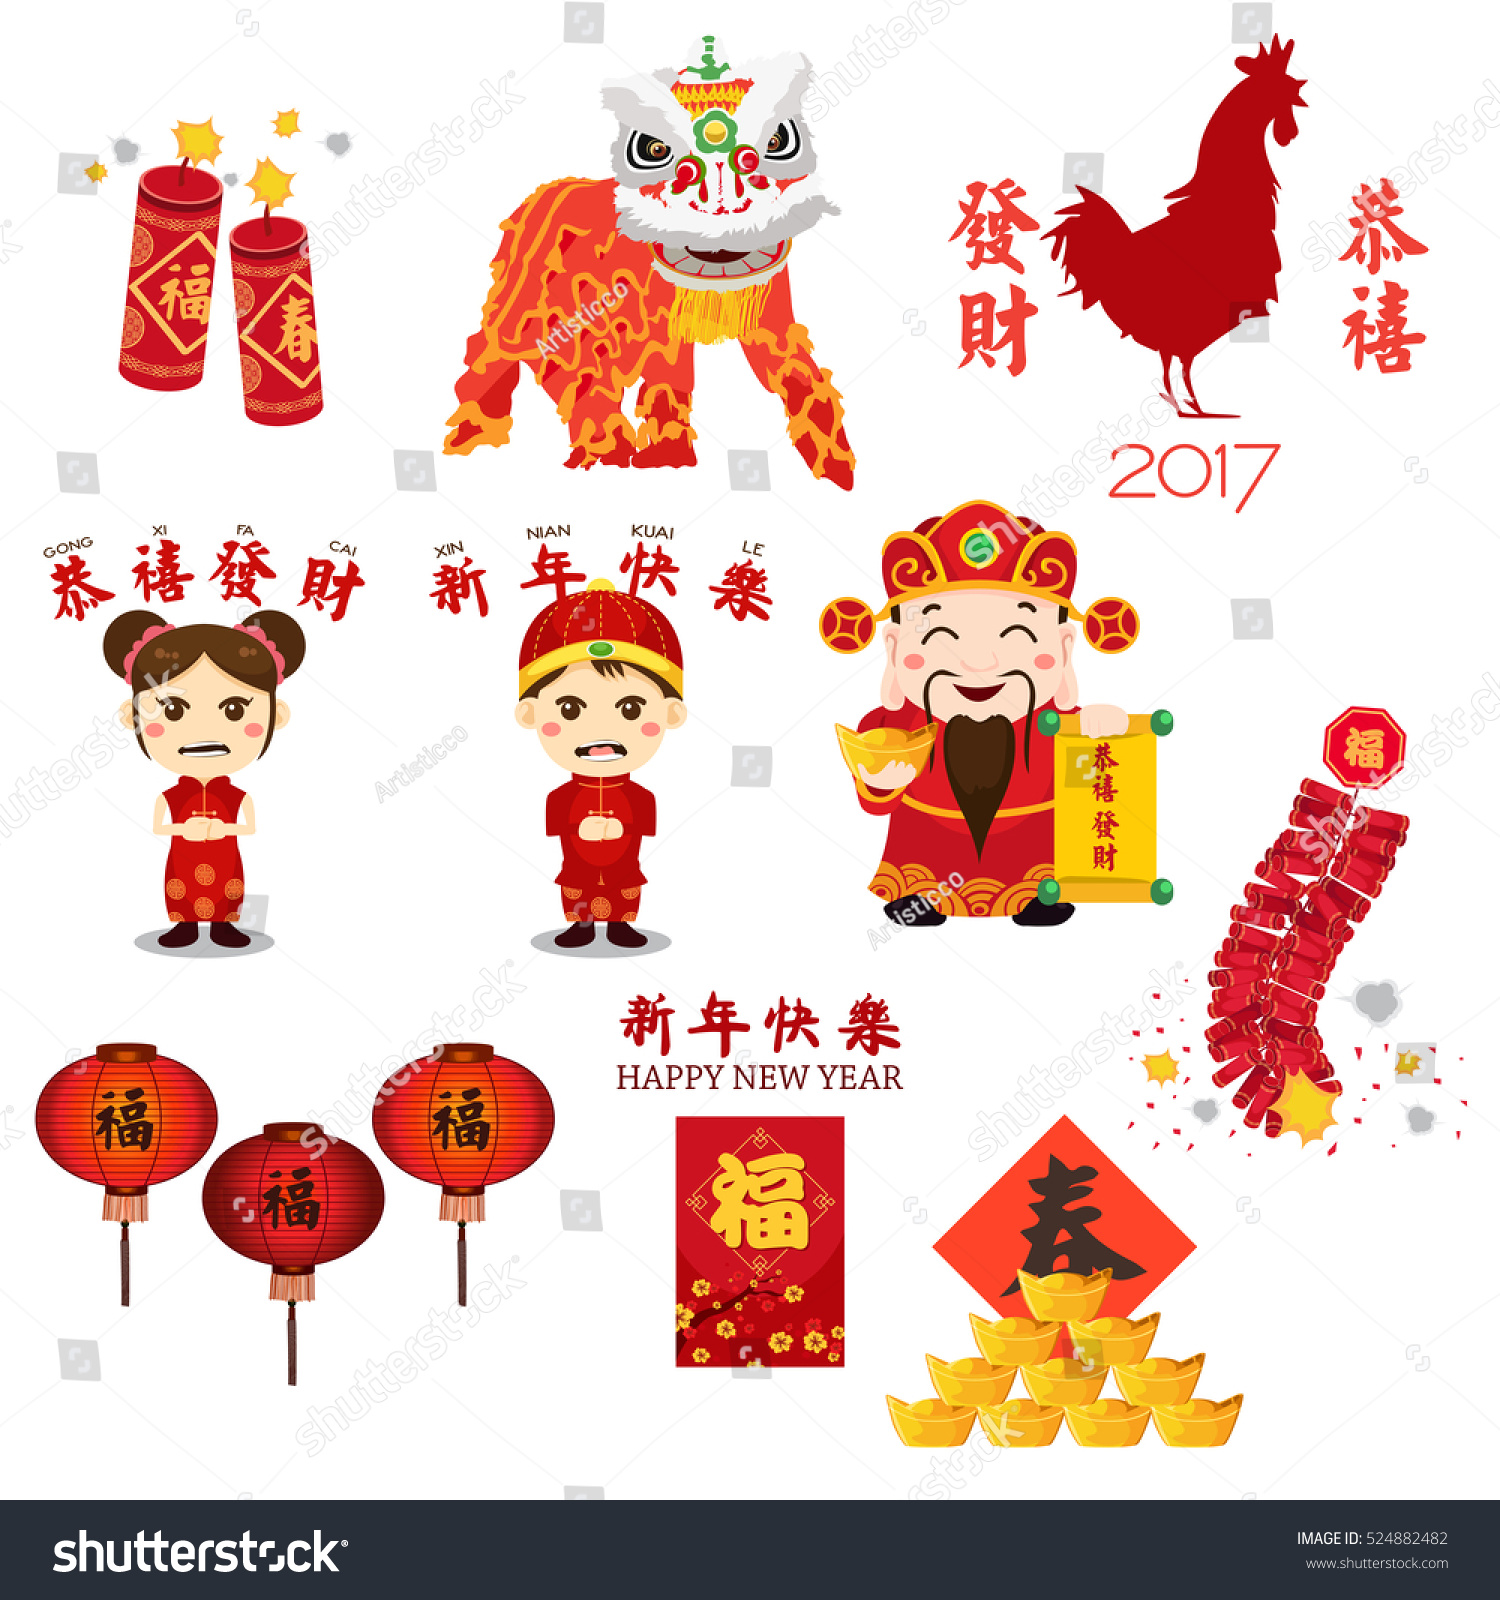 Chinese Calendar Illustration : Vector illustration chinese new year icons stock